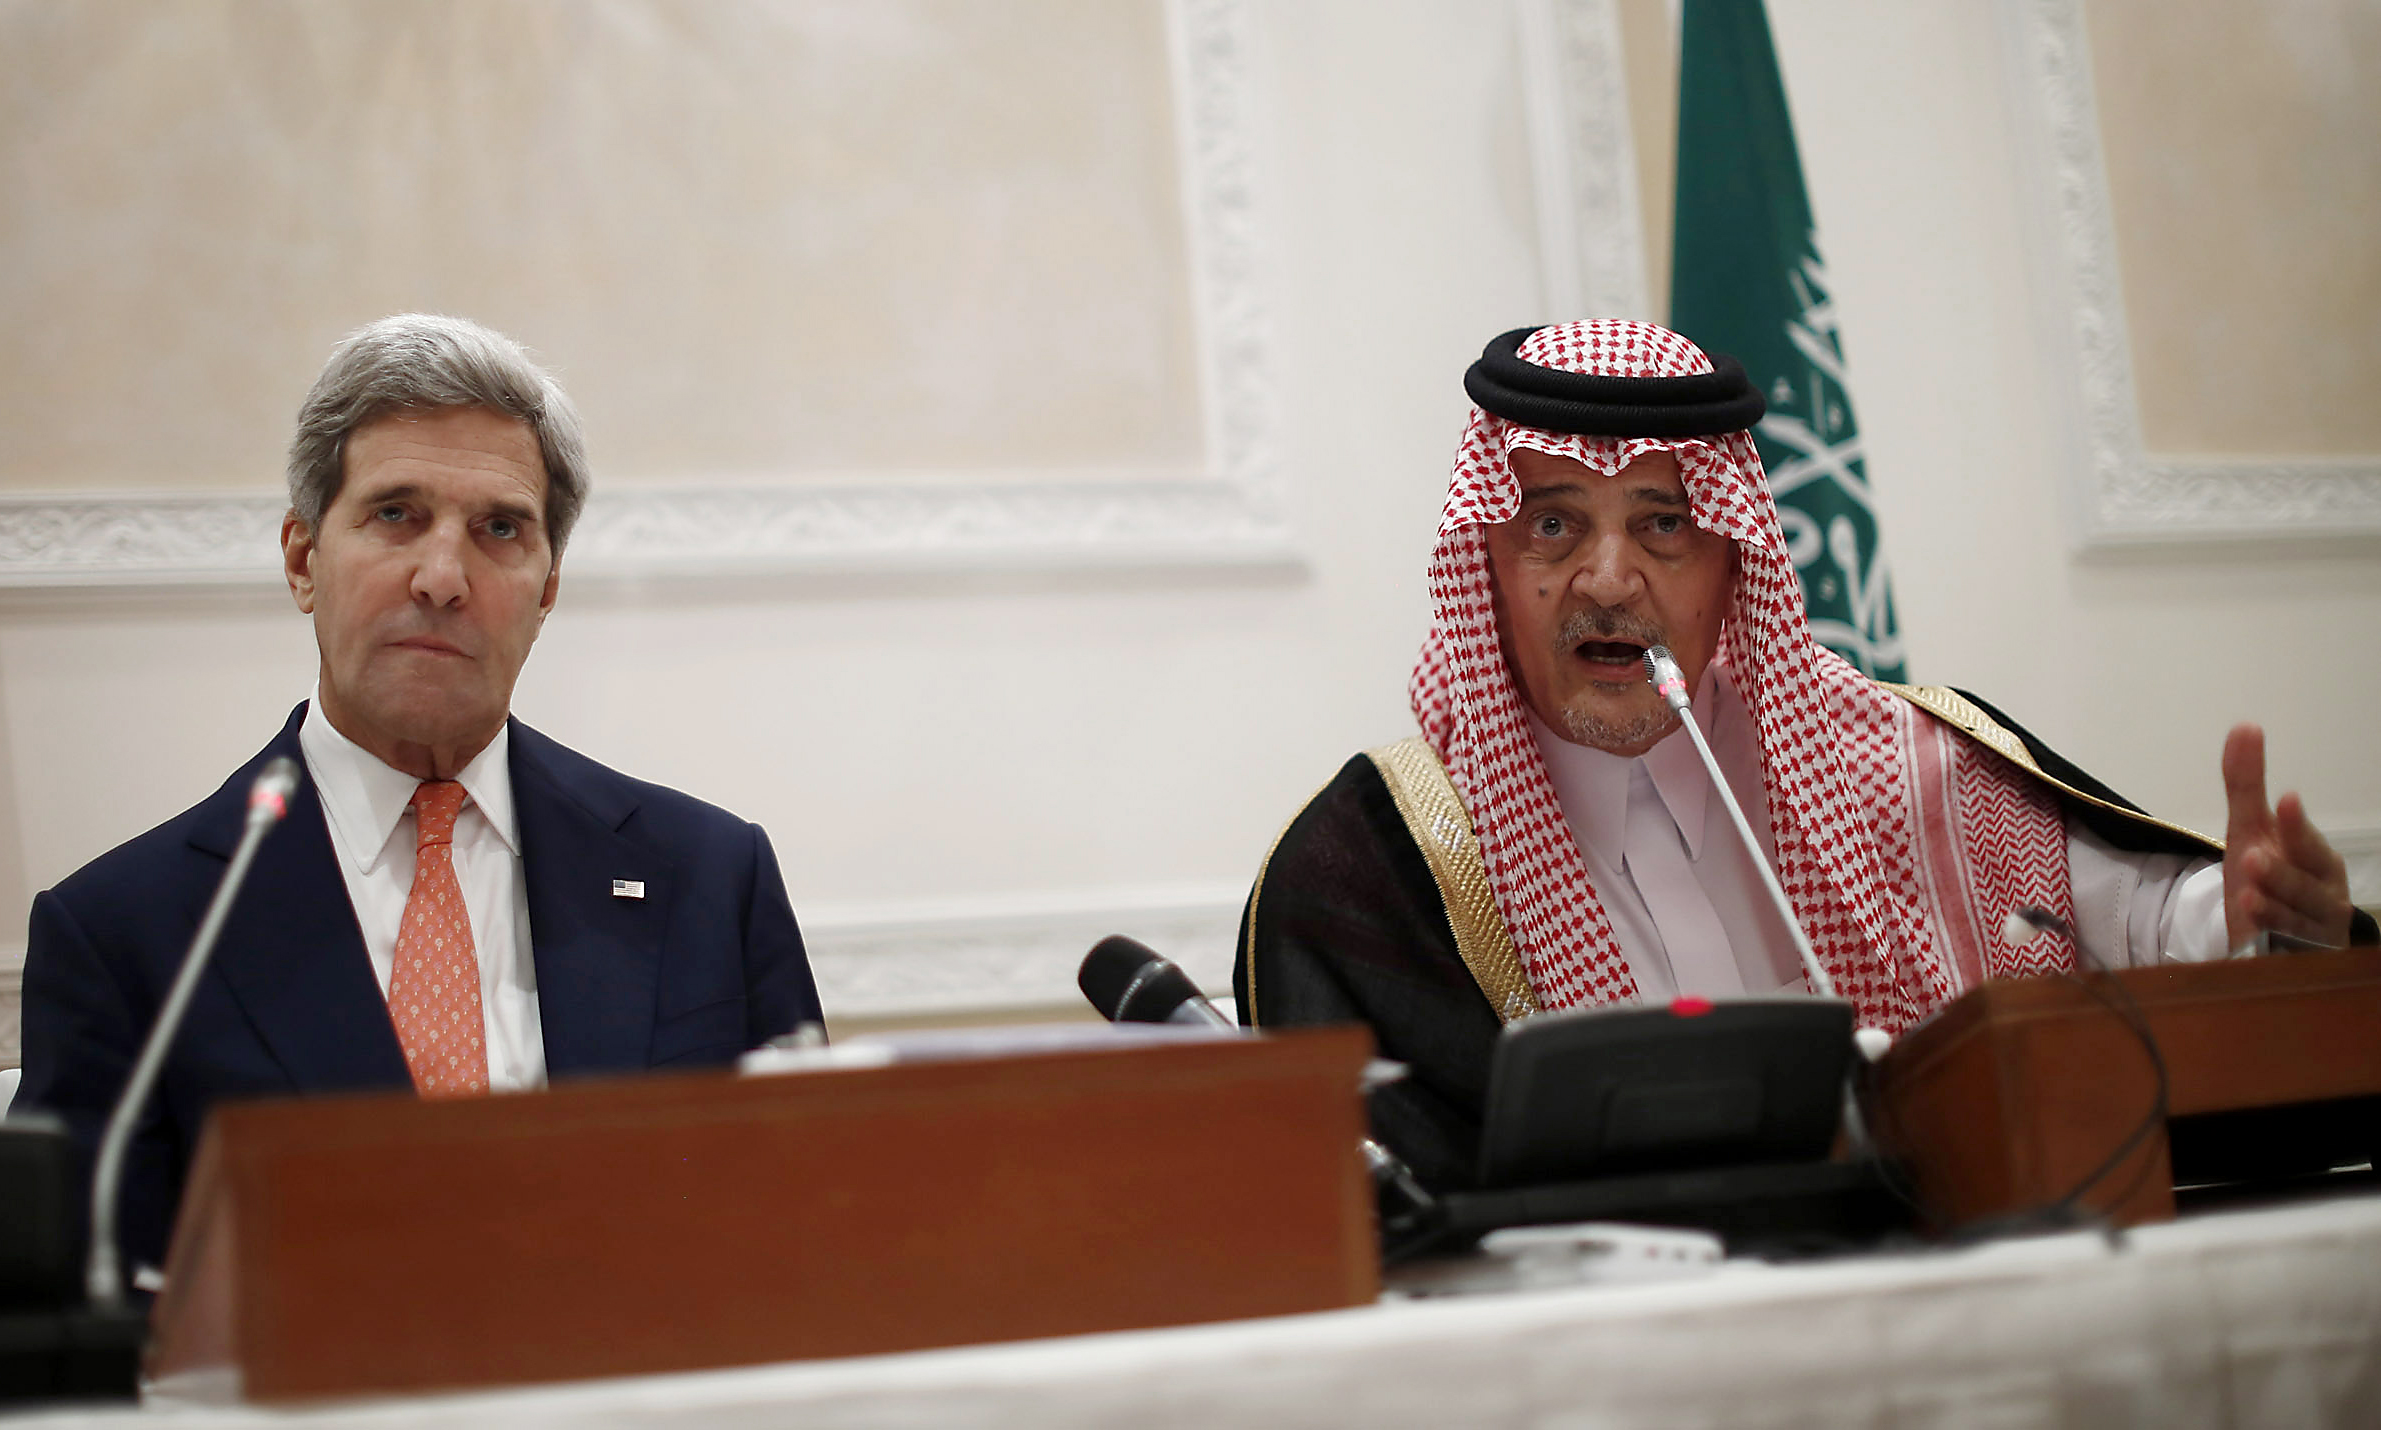 U.S. Secretary of State John Kerry and Saudi Foreign Minister Prince Saud al-Faisal (R) arrive for a joint press conference November 4, 2013 in Riyadh. (AFP PHOTO / POOL / JASON REED)